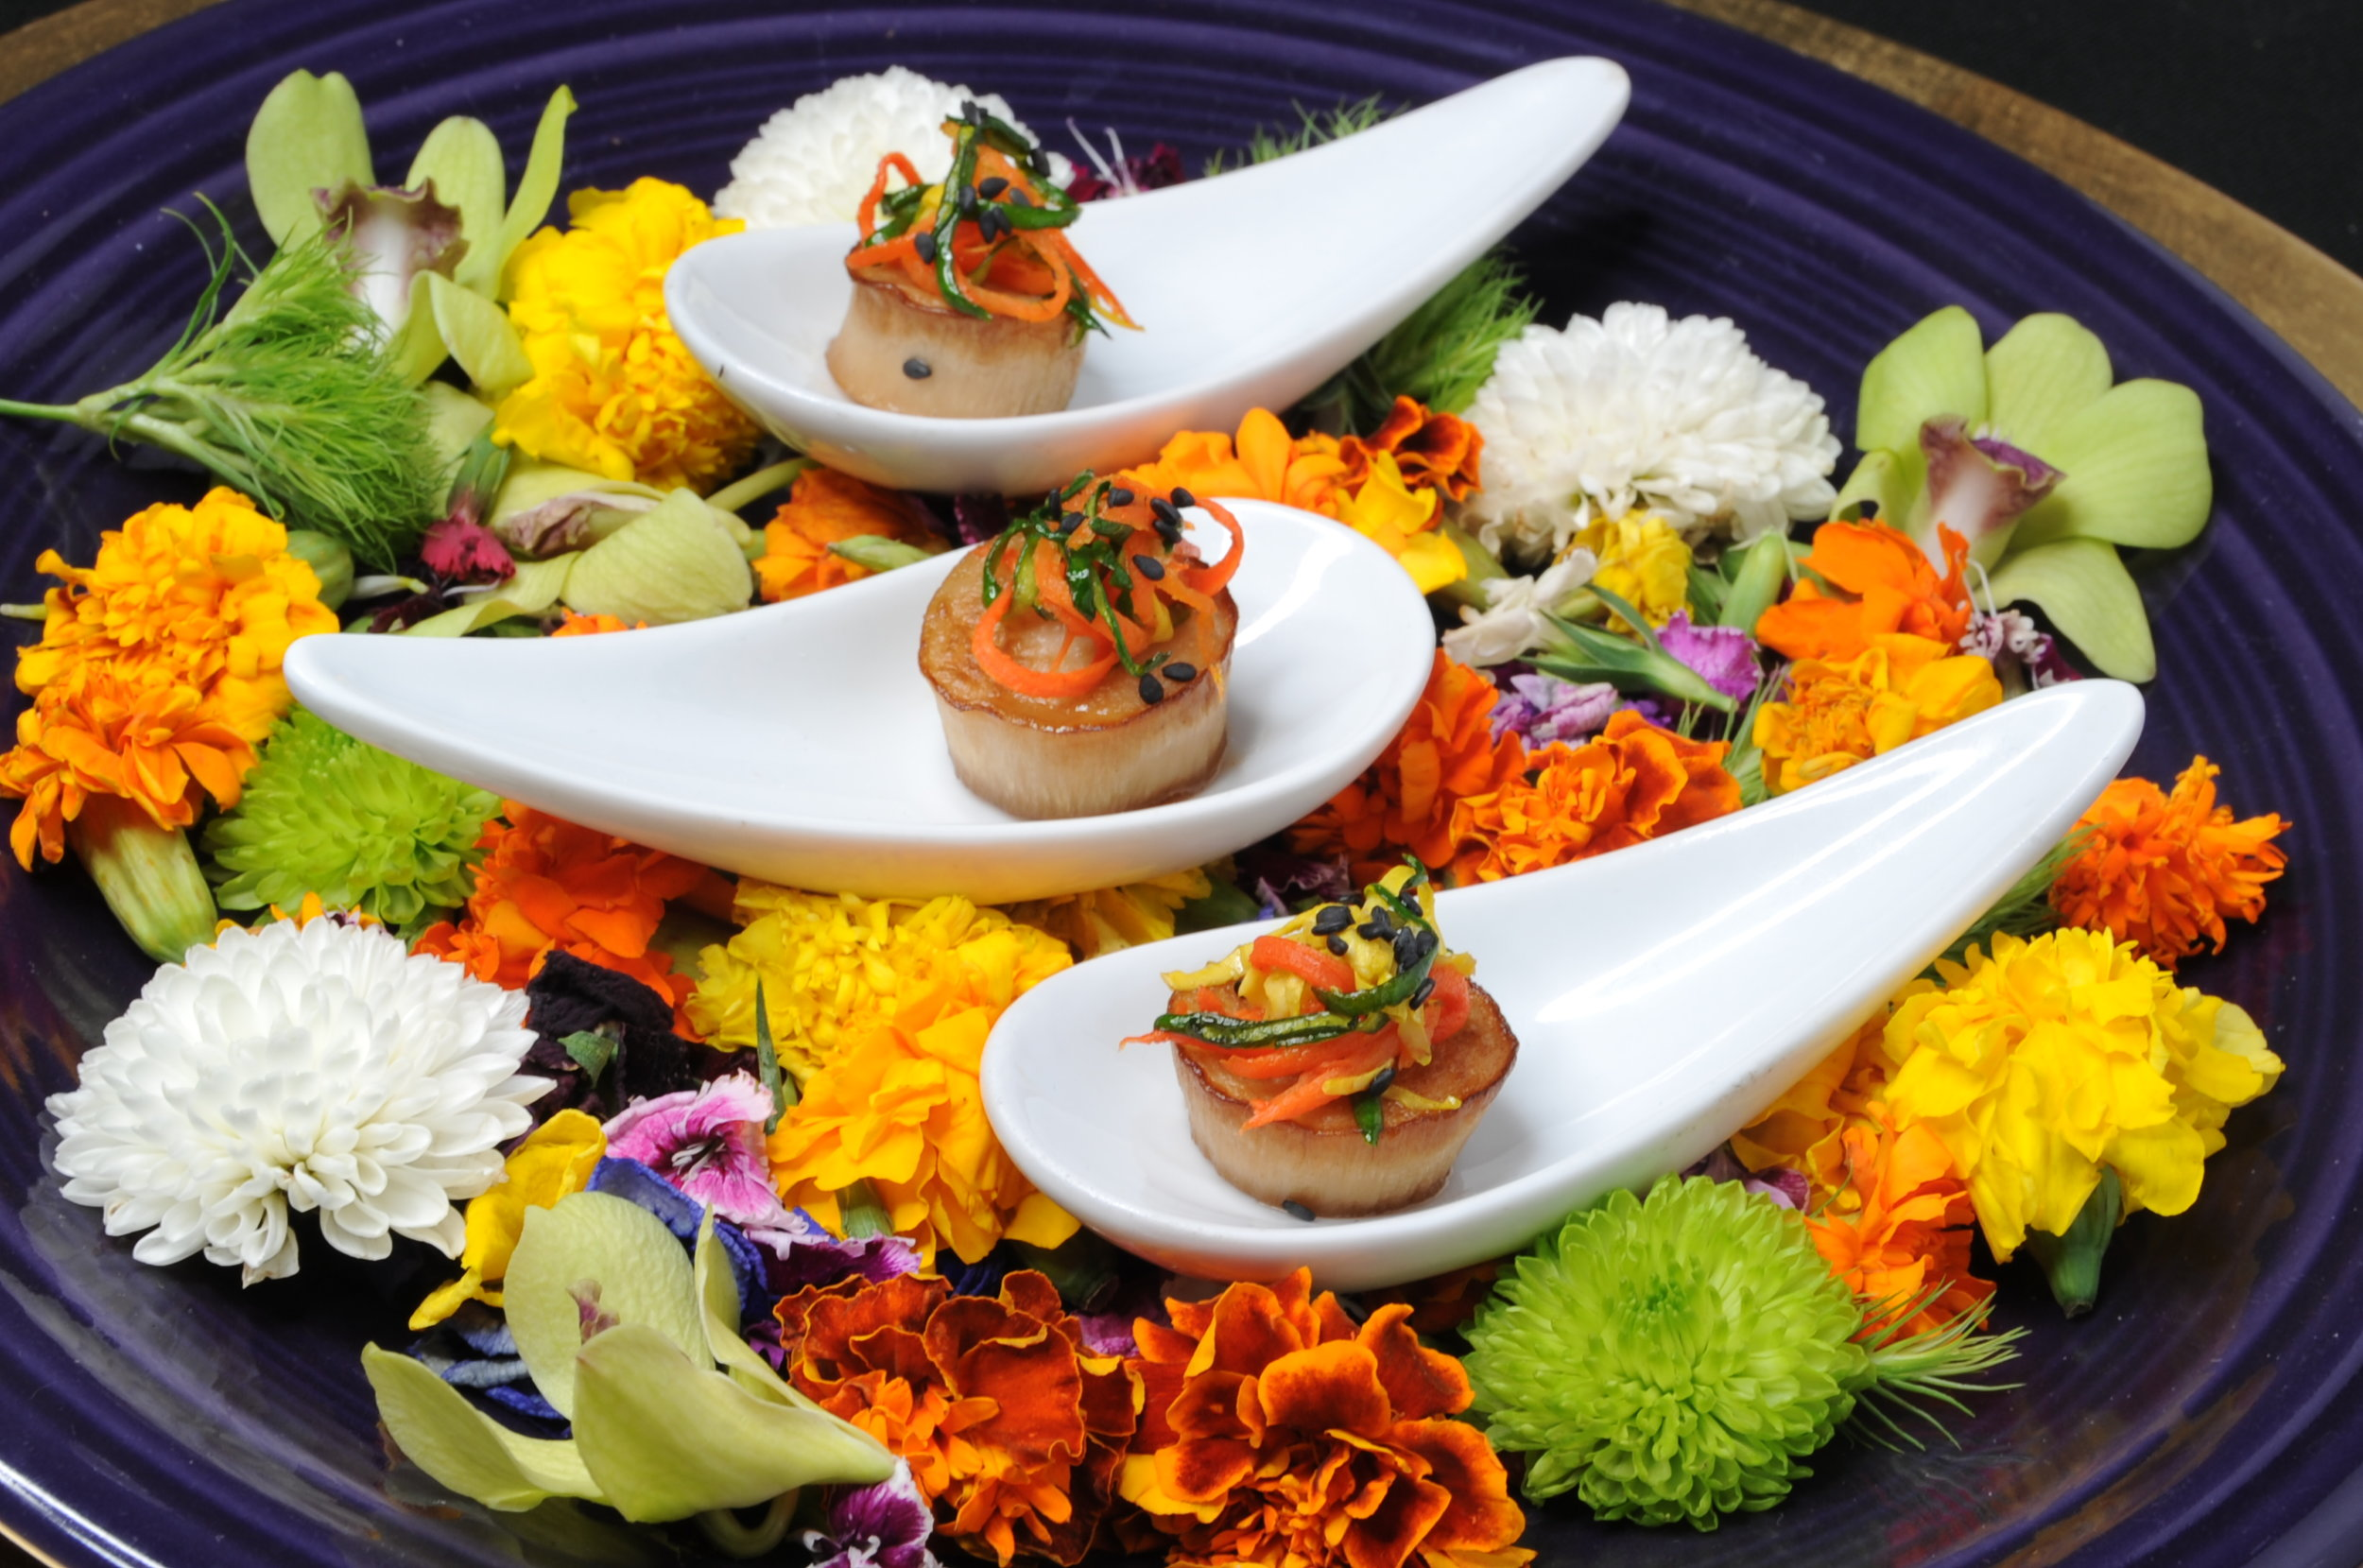 Seared miso king trumpet scallop with julienned vegetables, sake, and black sesame